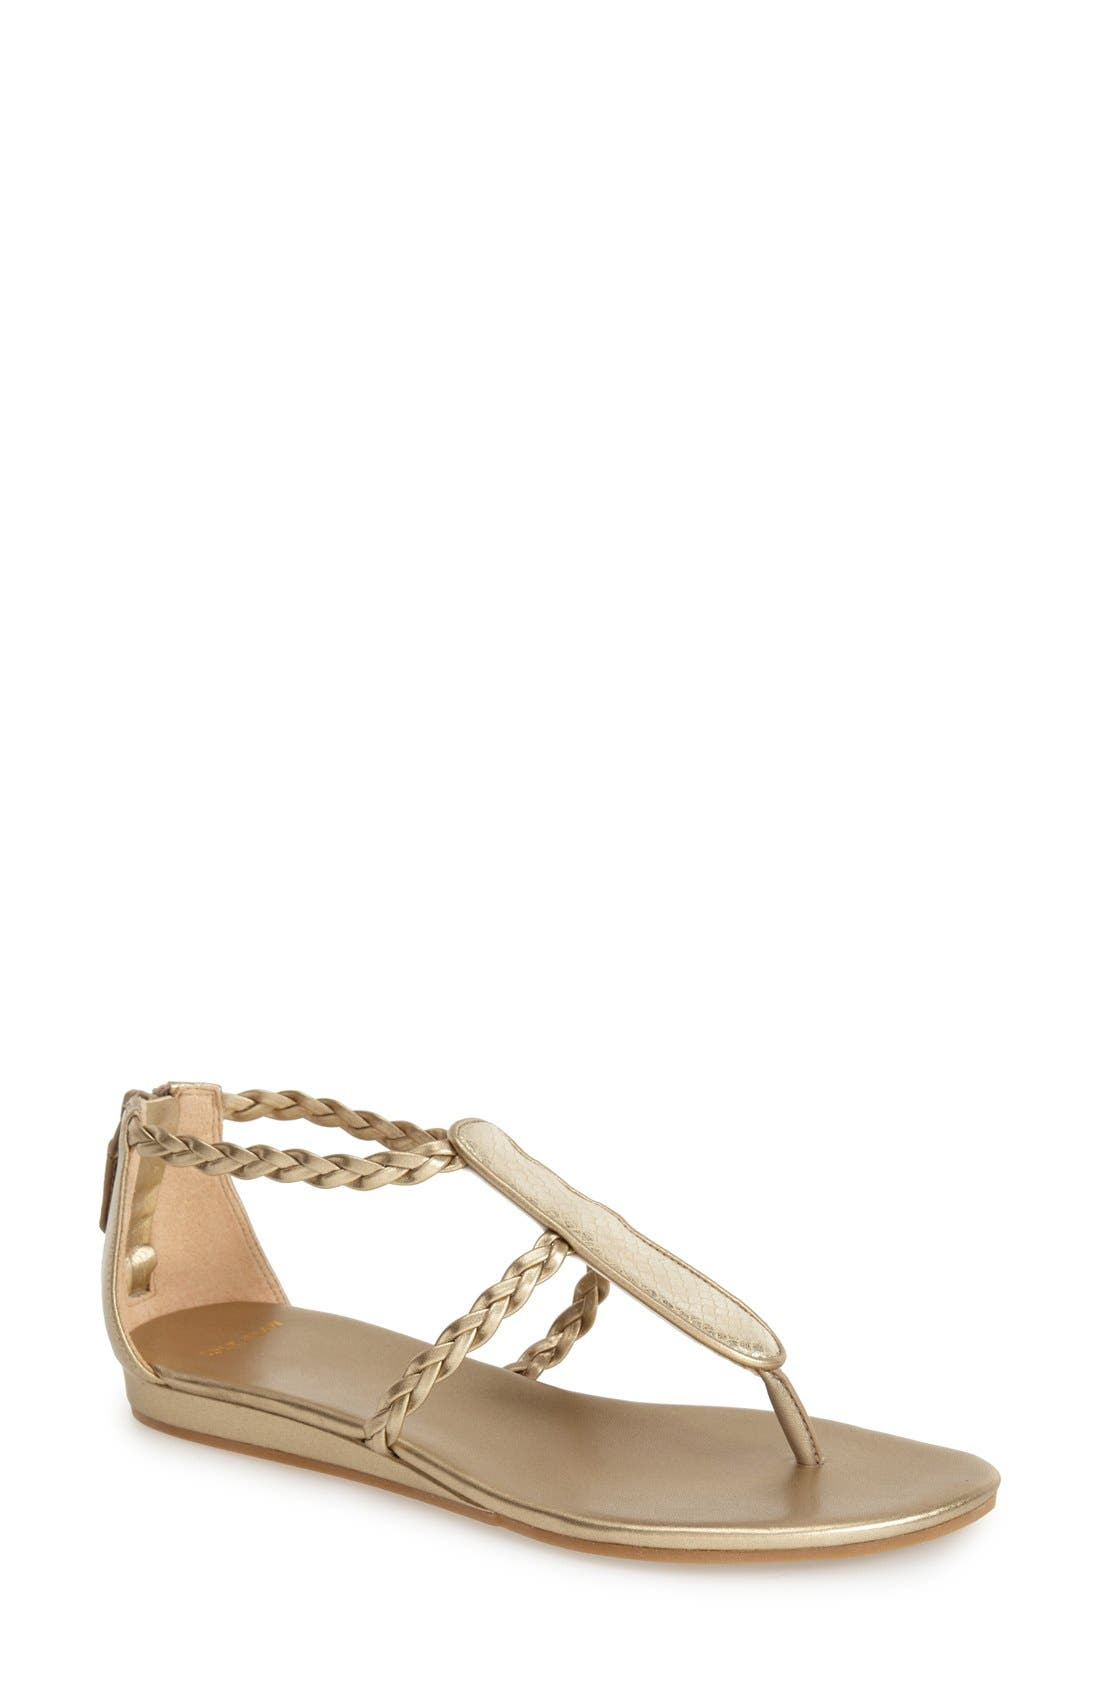 Alternate Image 1 Selected - Cole Haan 'Abbe' Sandal (Women)